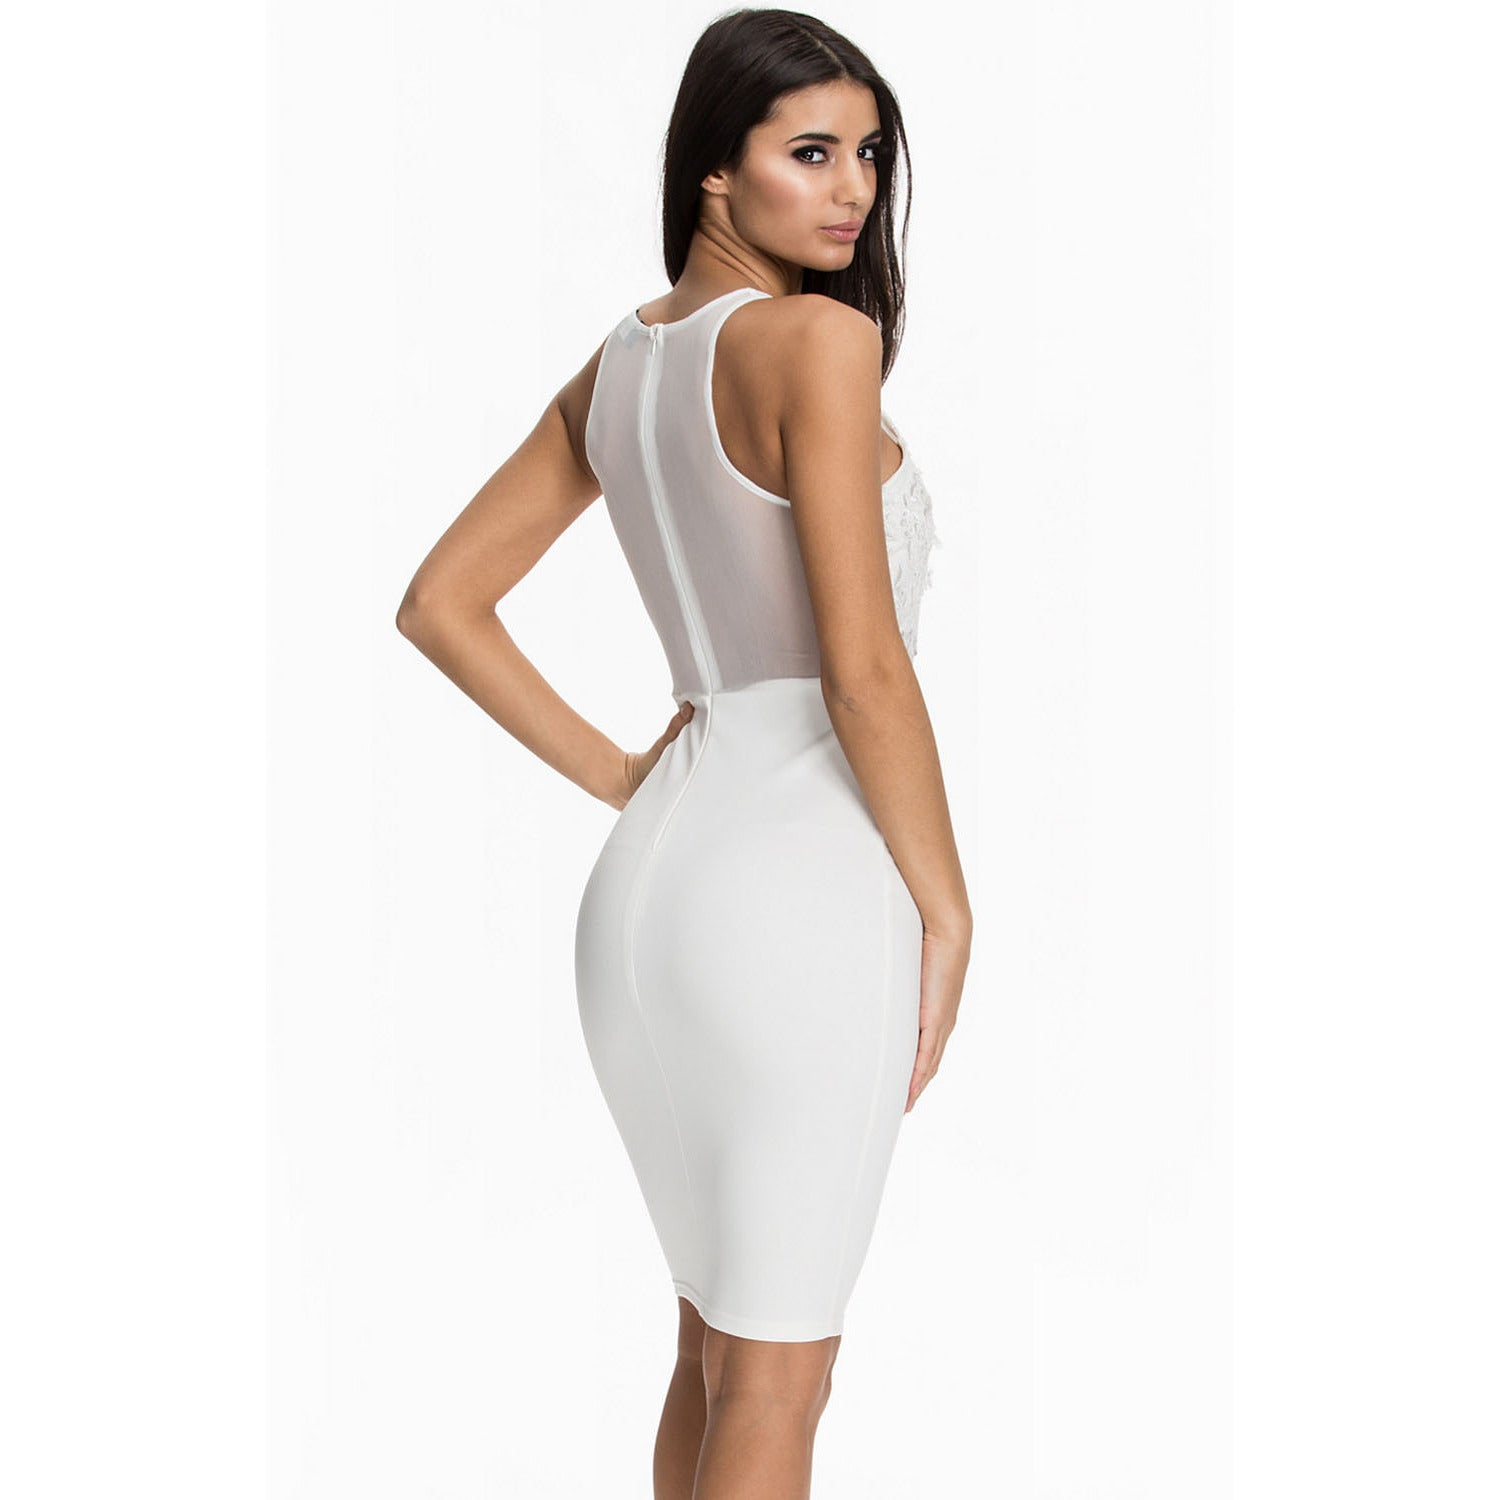 White Top Sleeveless Midi Dress Sale LAVELIQ - LAVELIQ - 2